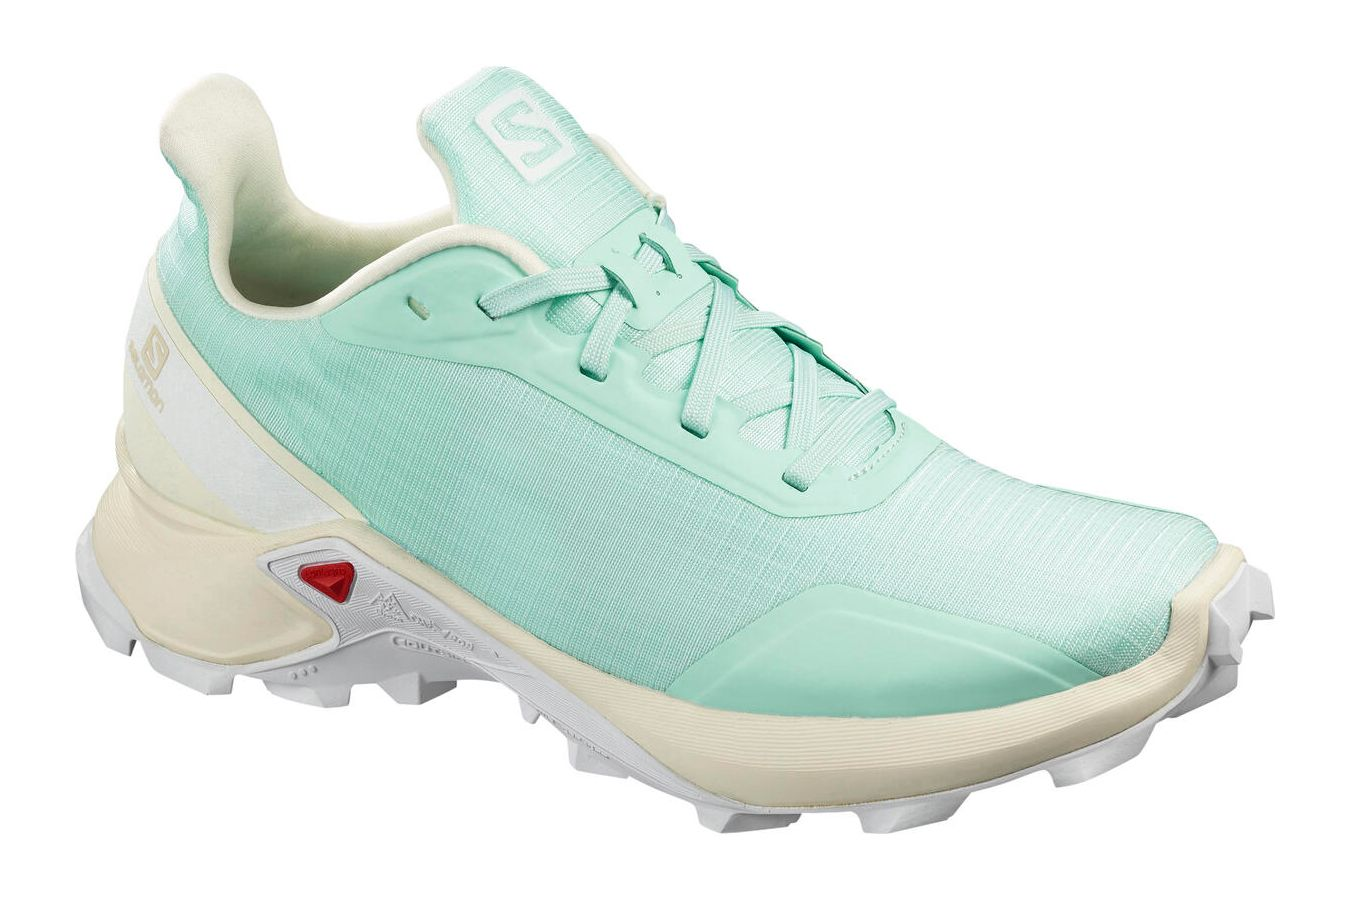 Salomon Alphacross W icy morn/vanila ice/white